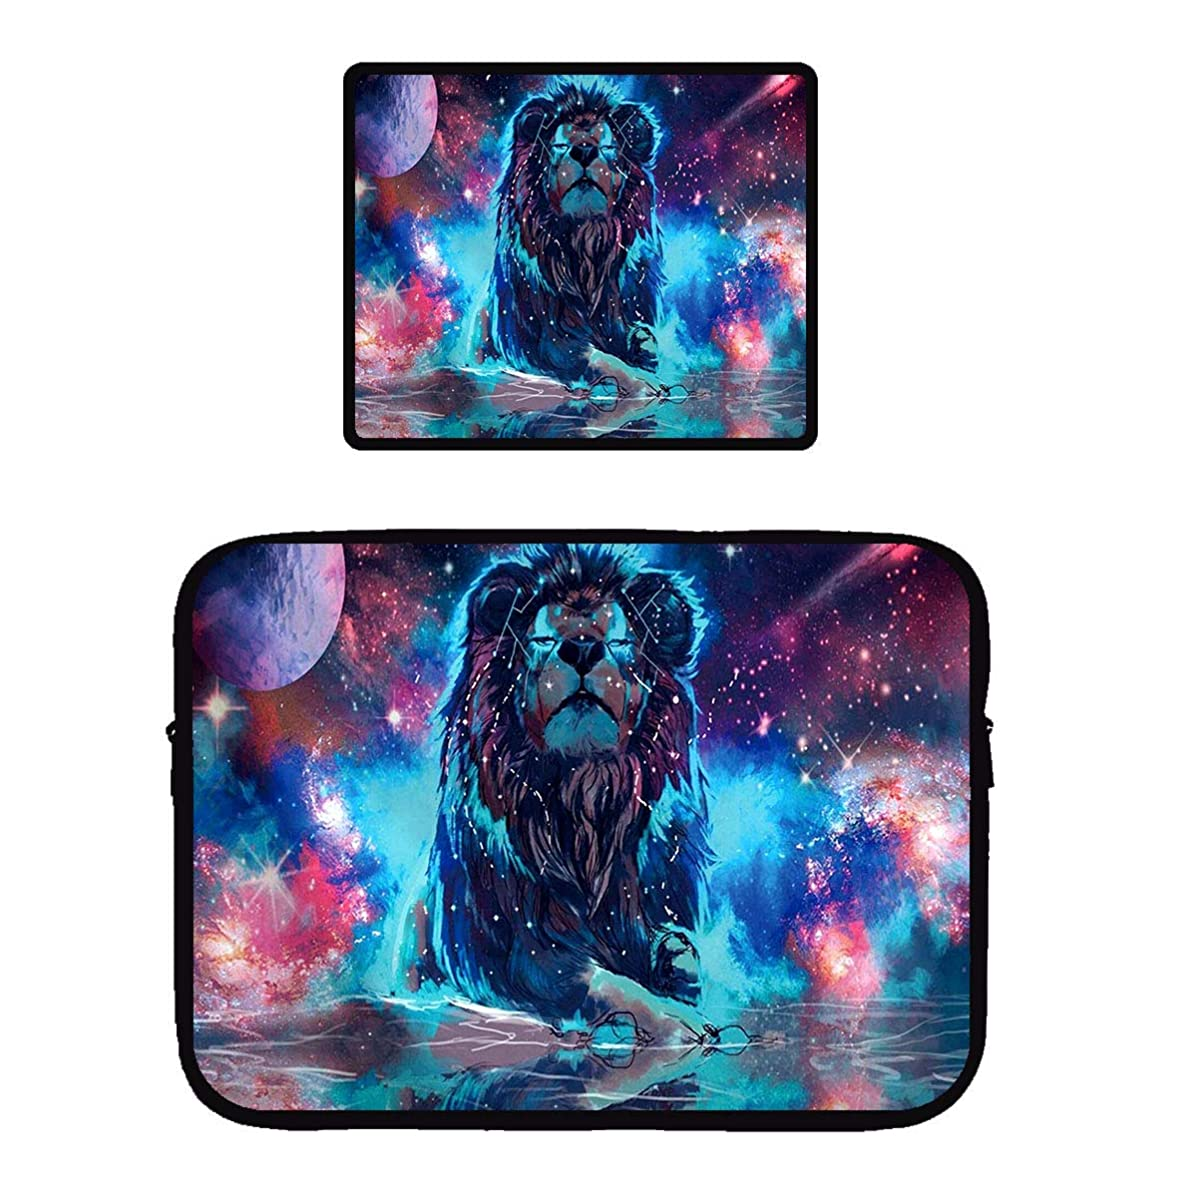 Beach Surfers Universe Galaxy Lion Nebula Leo Moon Star Earth Waterproof Laptop Computer Case Cover Sleeve & Mouse Pad Mousepad for Apple MacBook Air/Notebook/Netbook/Chromebook